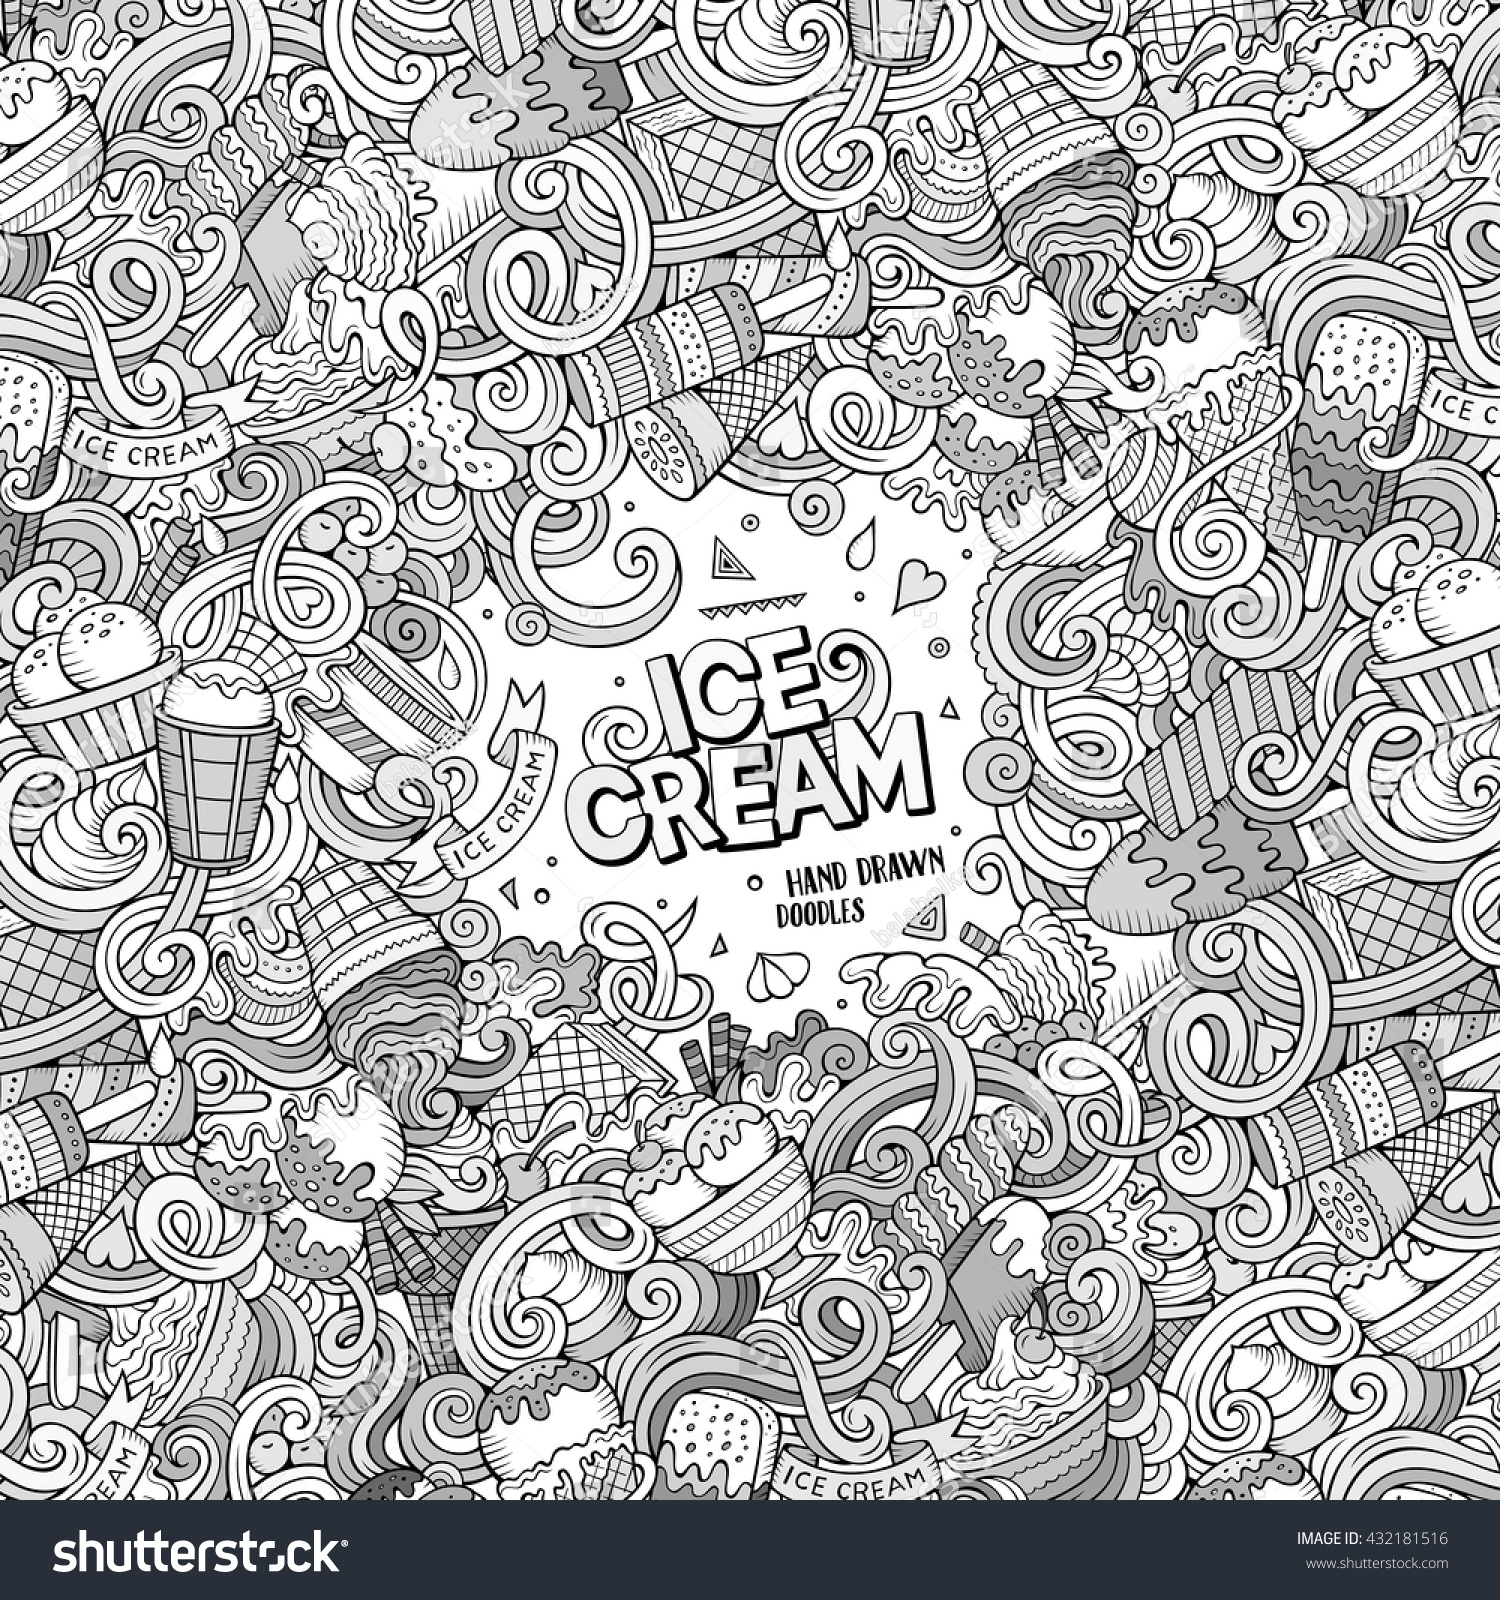 Line Drawing Doodles : Cartoon handdrawn doodles ice cream illustration stock